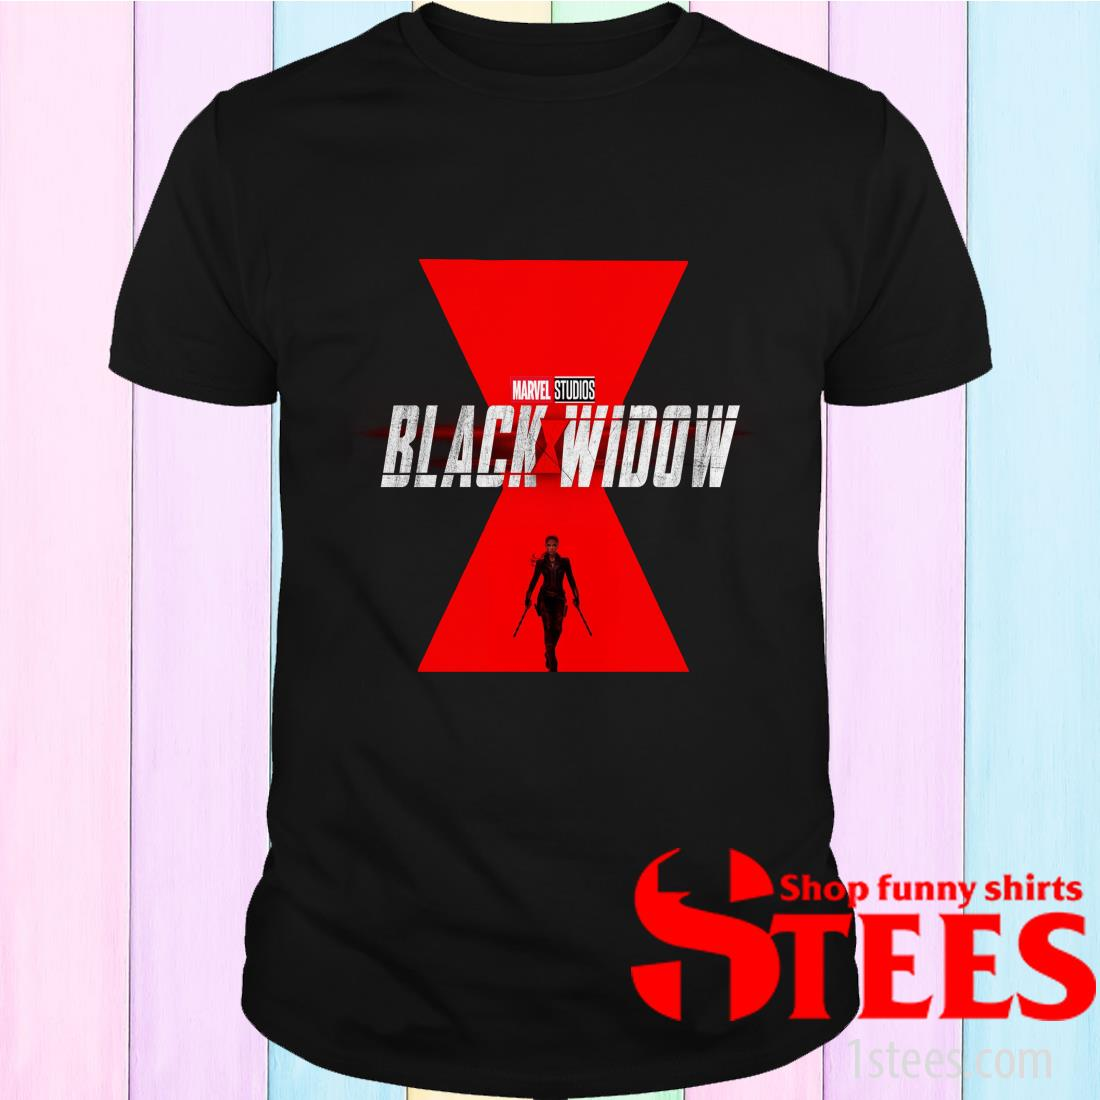 Marvel Black Widow Starring Scarlett Johansson Shirt